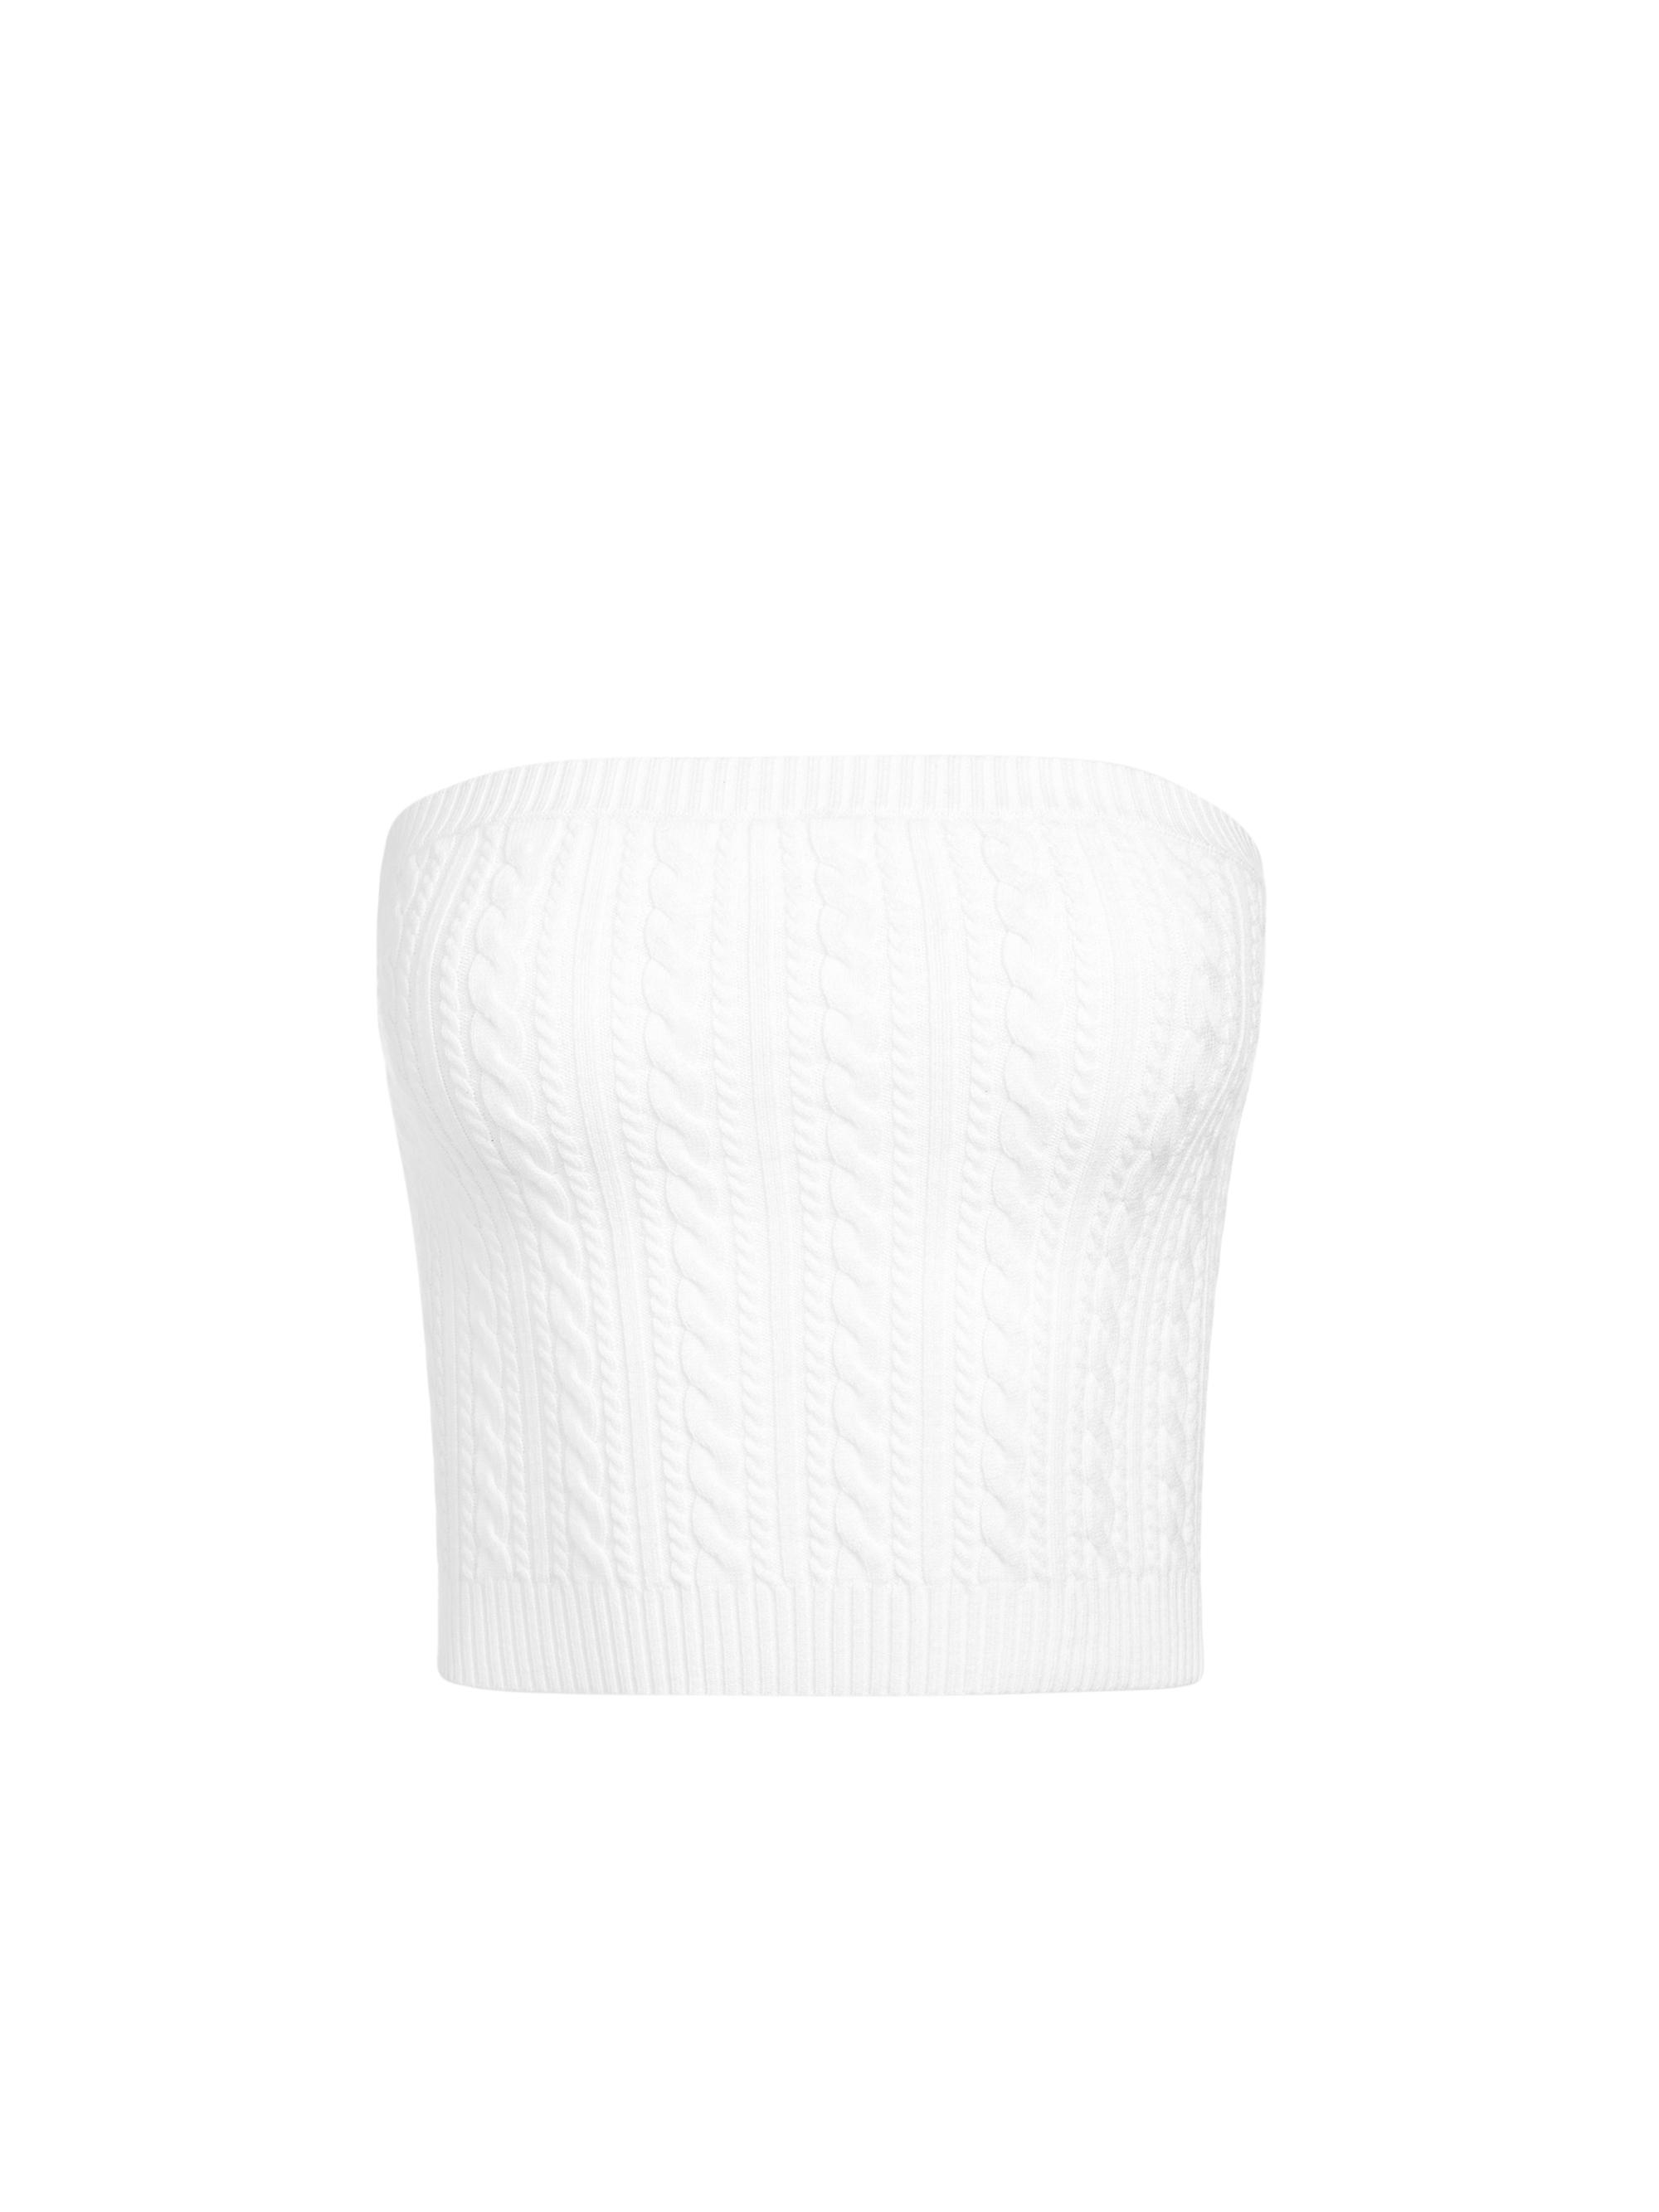 IZZIE CABLEKNIT TUBE TOP 6